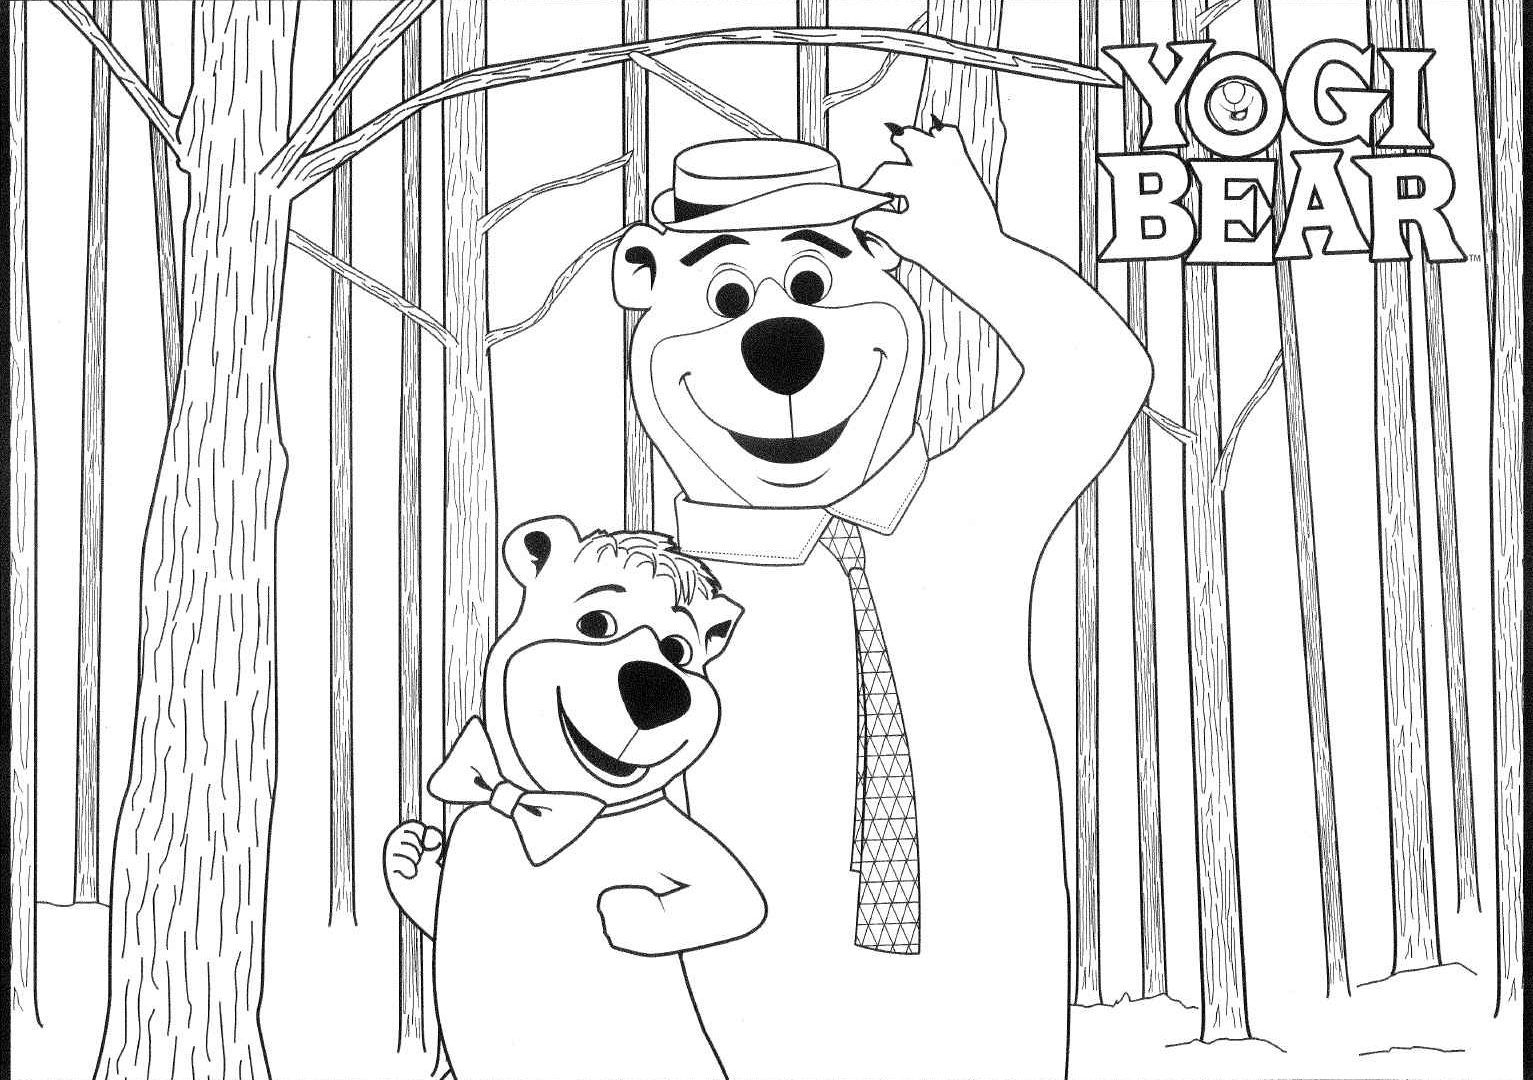 Yogi Bear Christmas Coloring Pages With Fredbear Family Diner Best Image Of Page